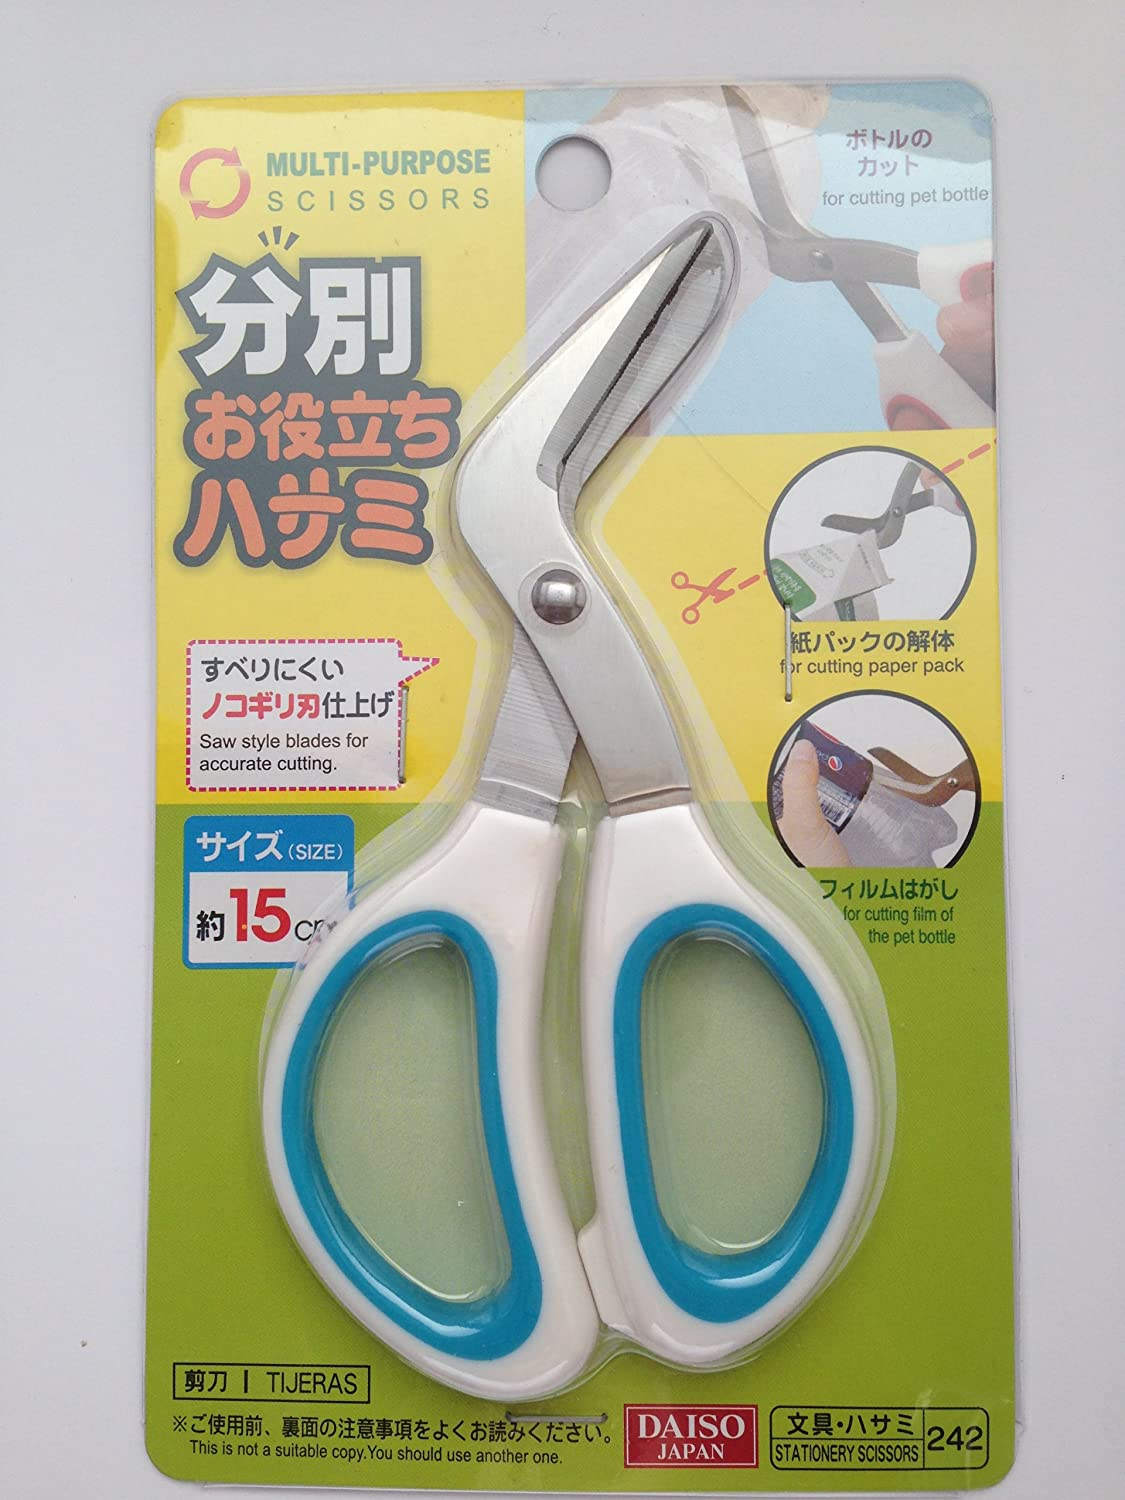 Super beauty Houston Mall product restock quality top Saw Style Bent Blade Scissors Multi-purpose Shears